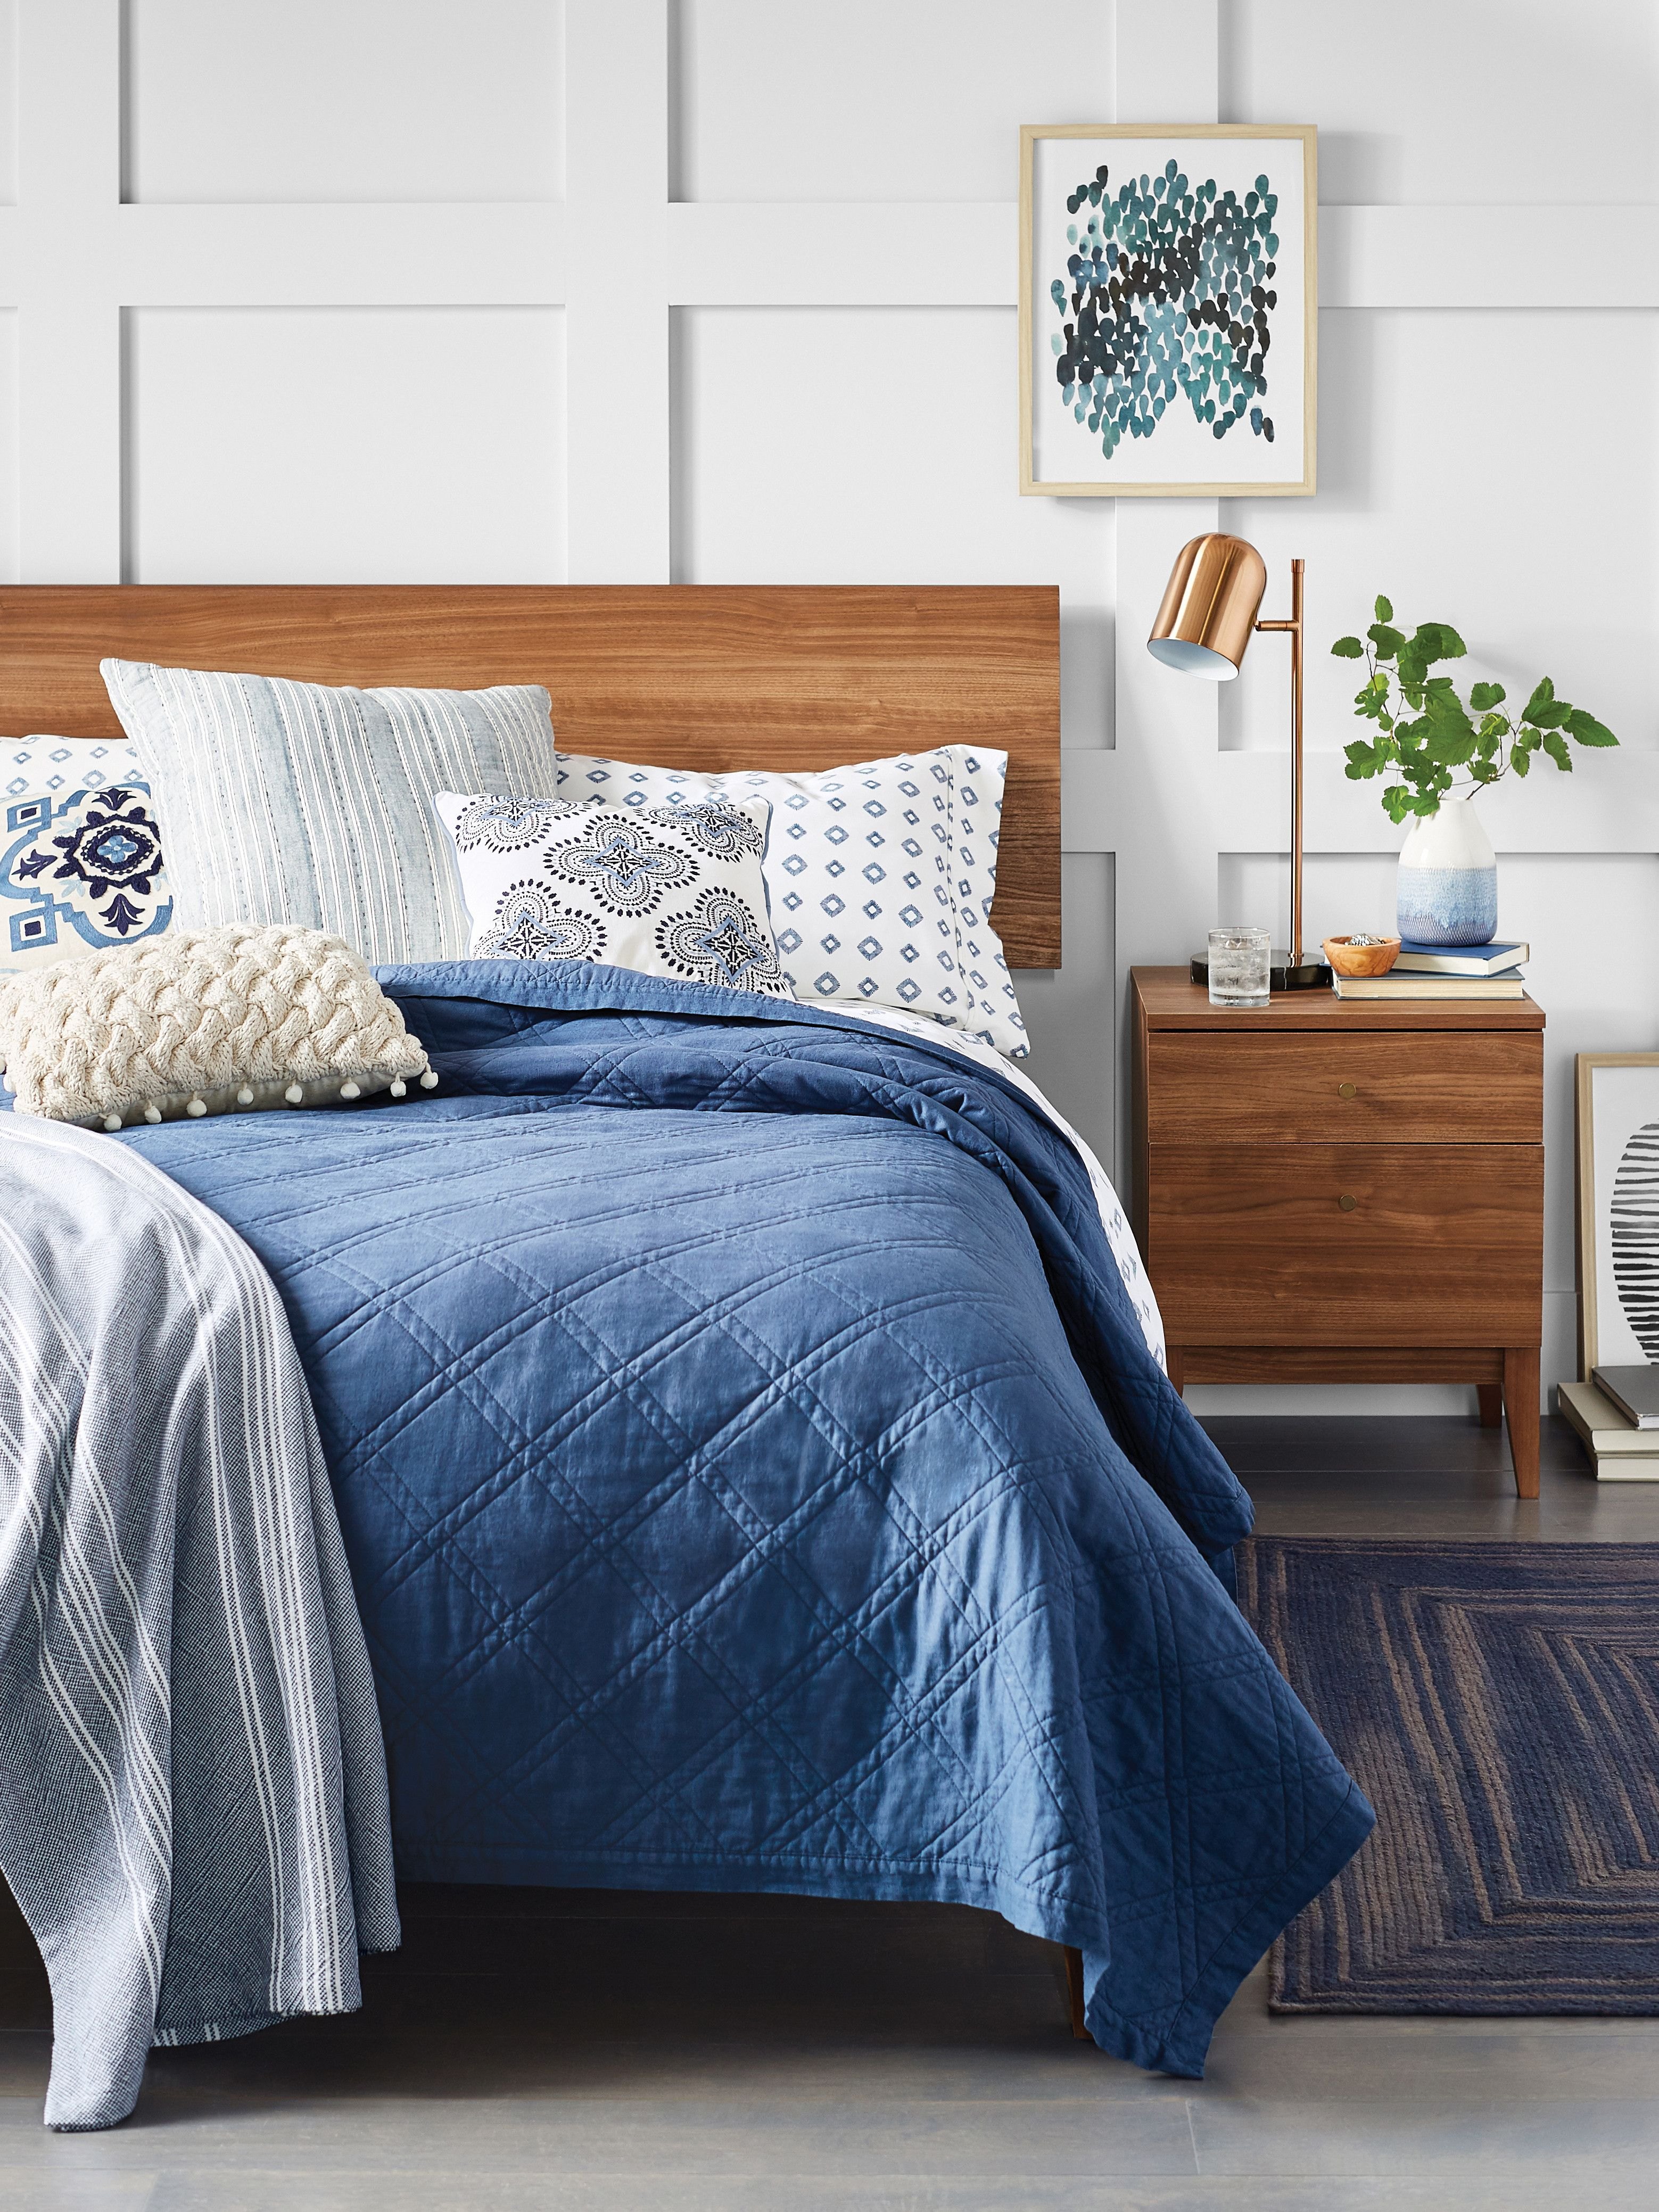 Check Out Chip And Joanna Gaines Fall 2018 Target Line Target Bedroom Target Home Decor Home